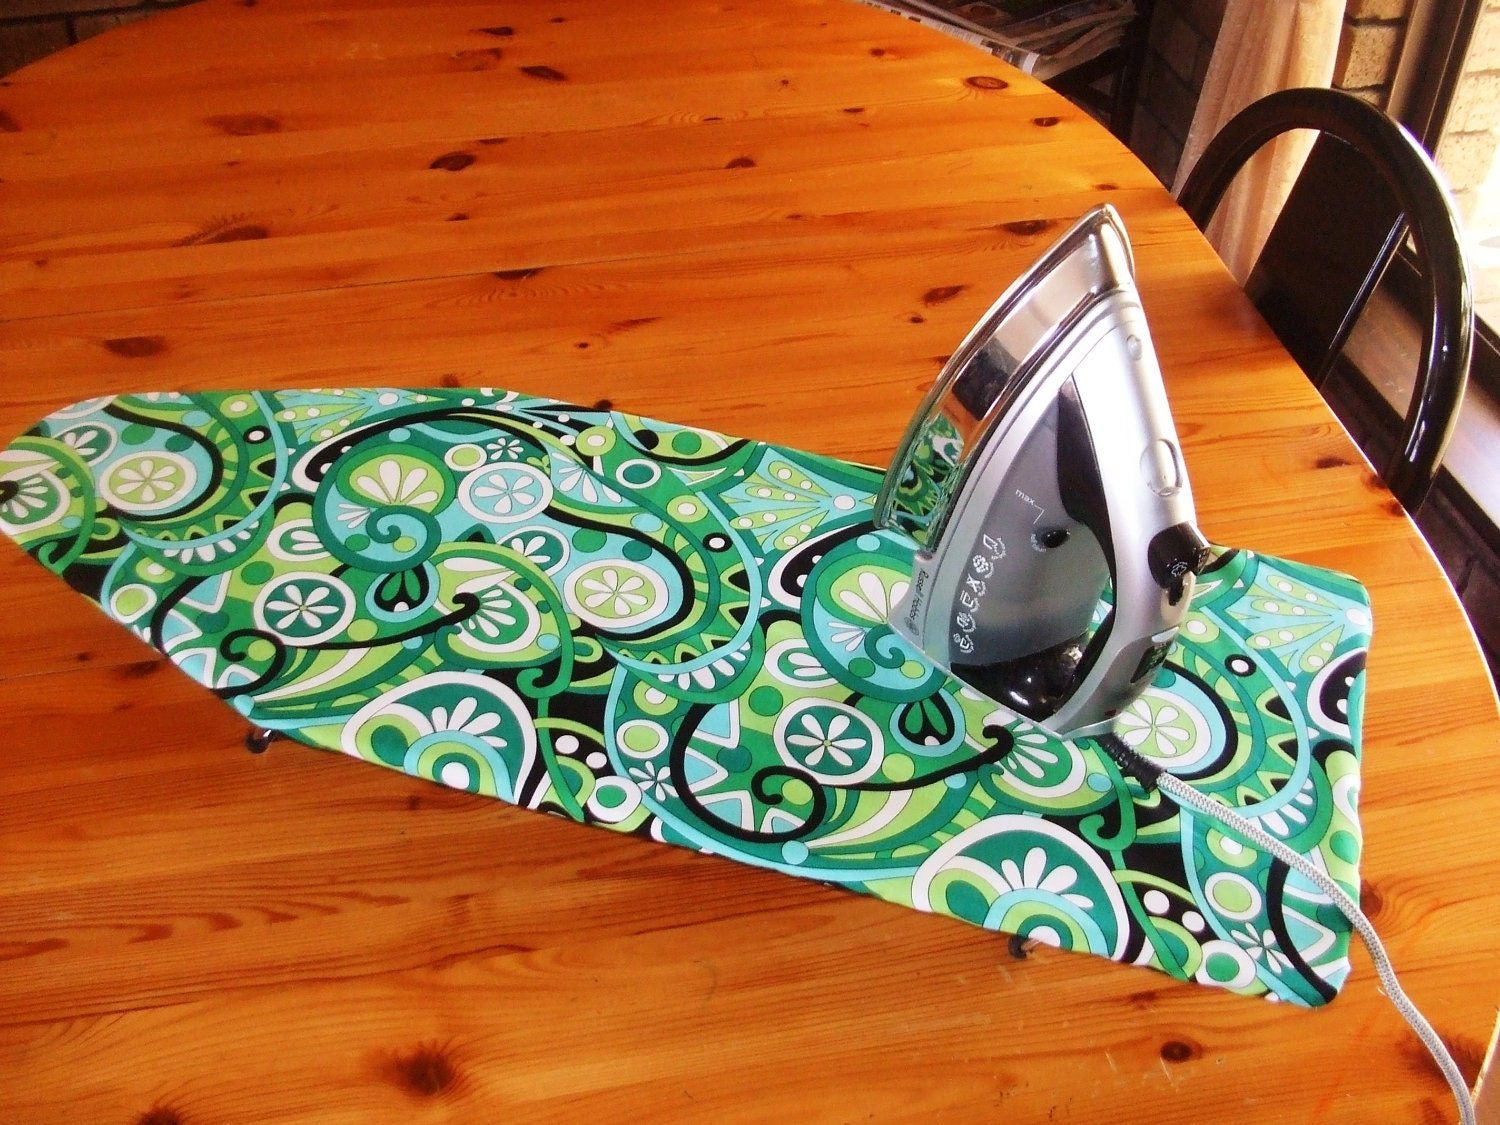 table top ironing board cover retro green and black swirls. Black Bedroom Furniture Sets. Home Design Ideas